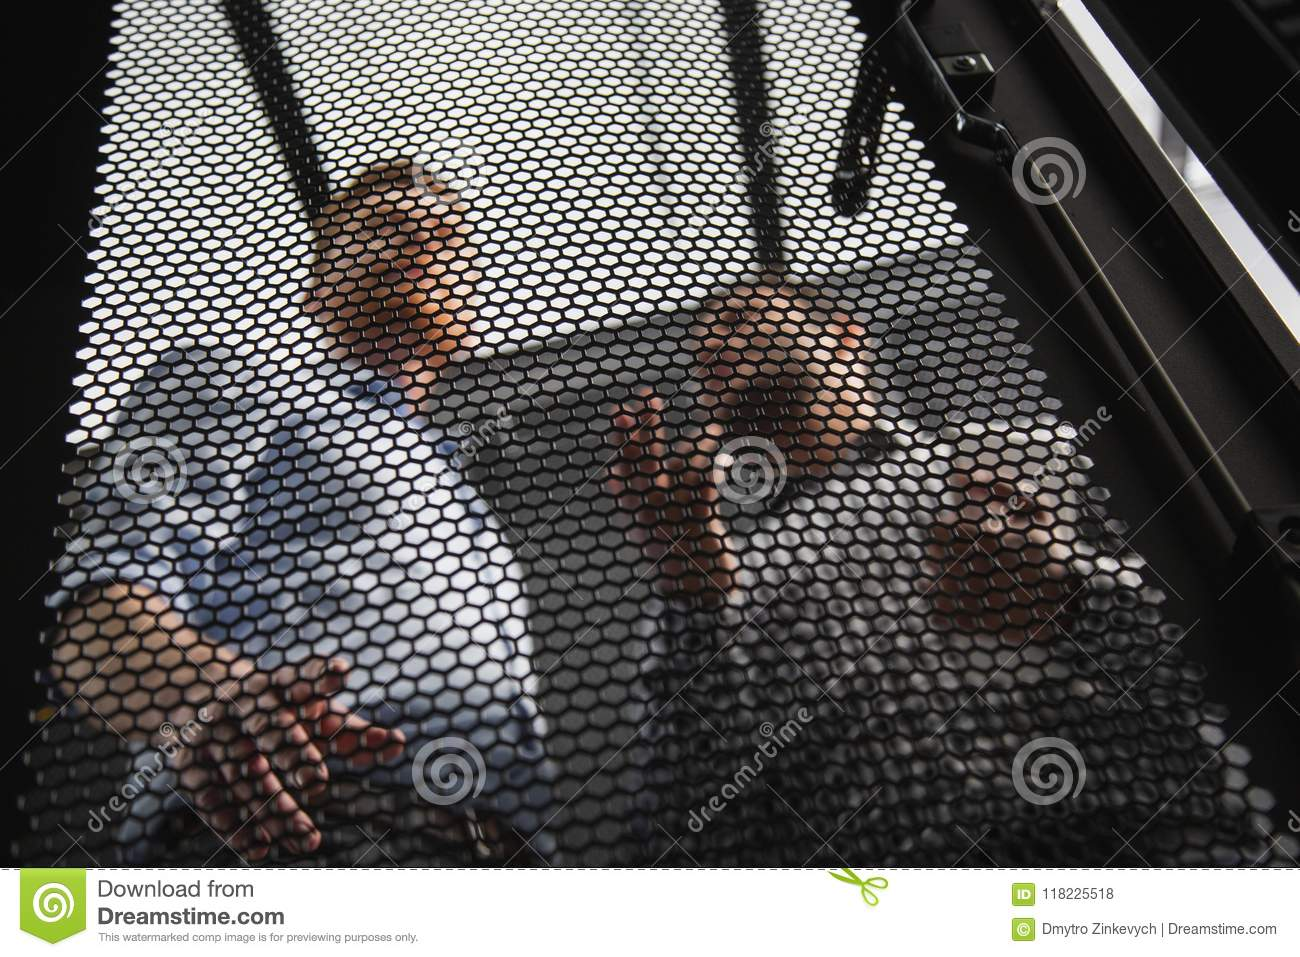 Download Appealing Two Colleagues Talking About Server Closet Stock Photo    Image Of Service, Expert